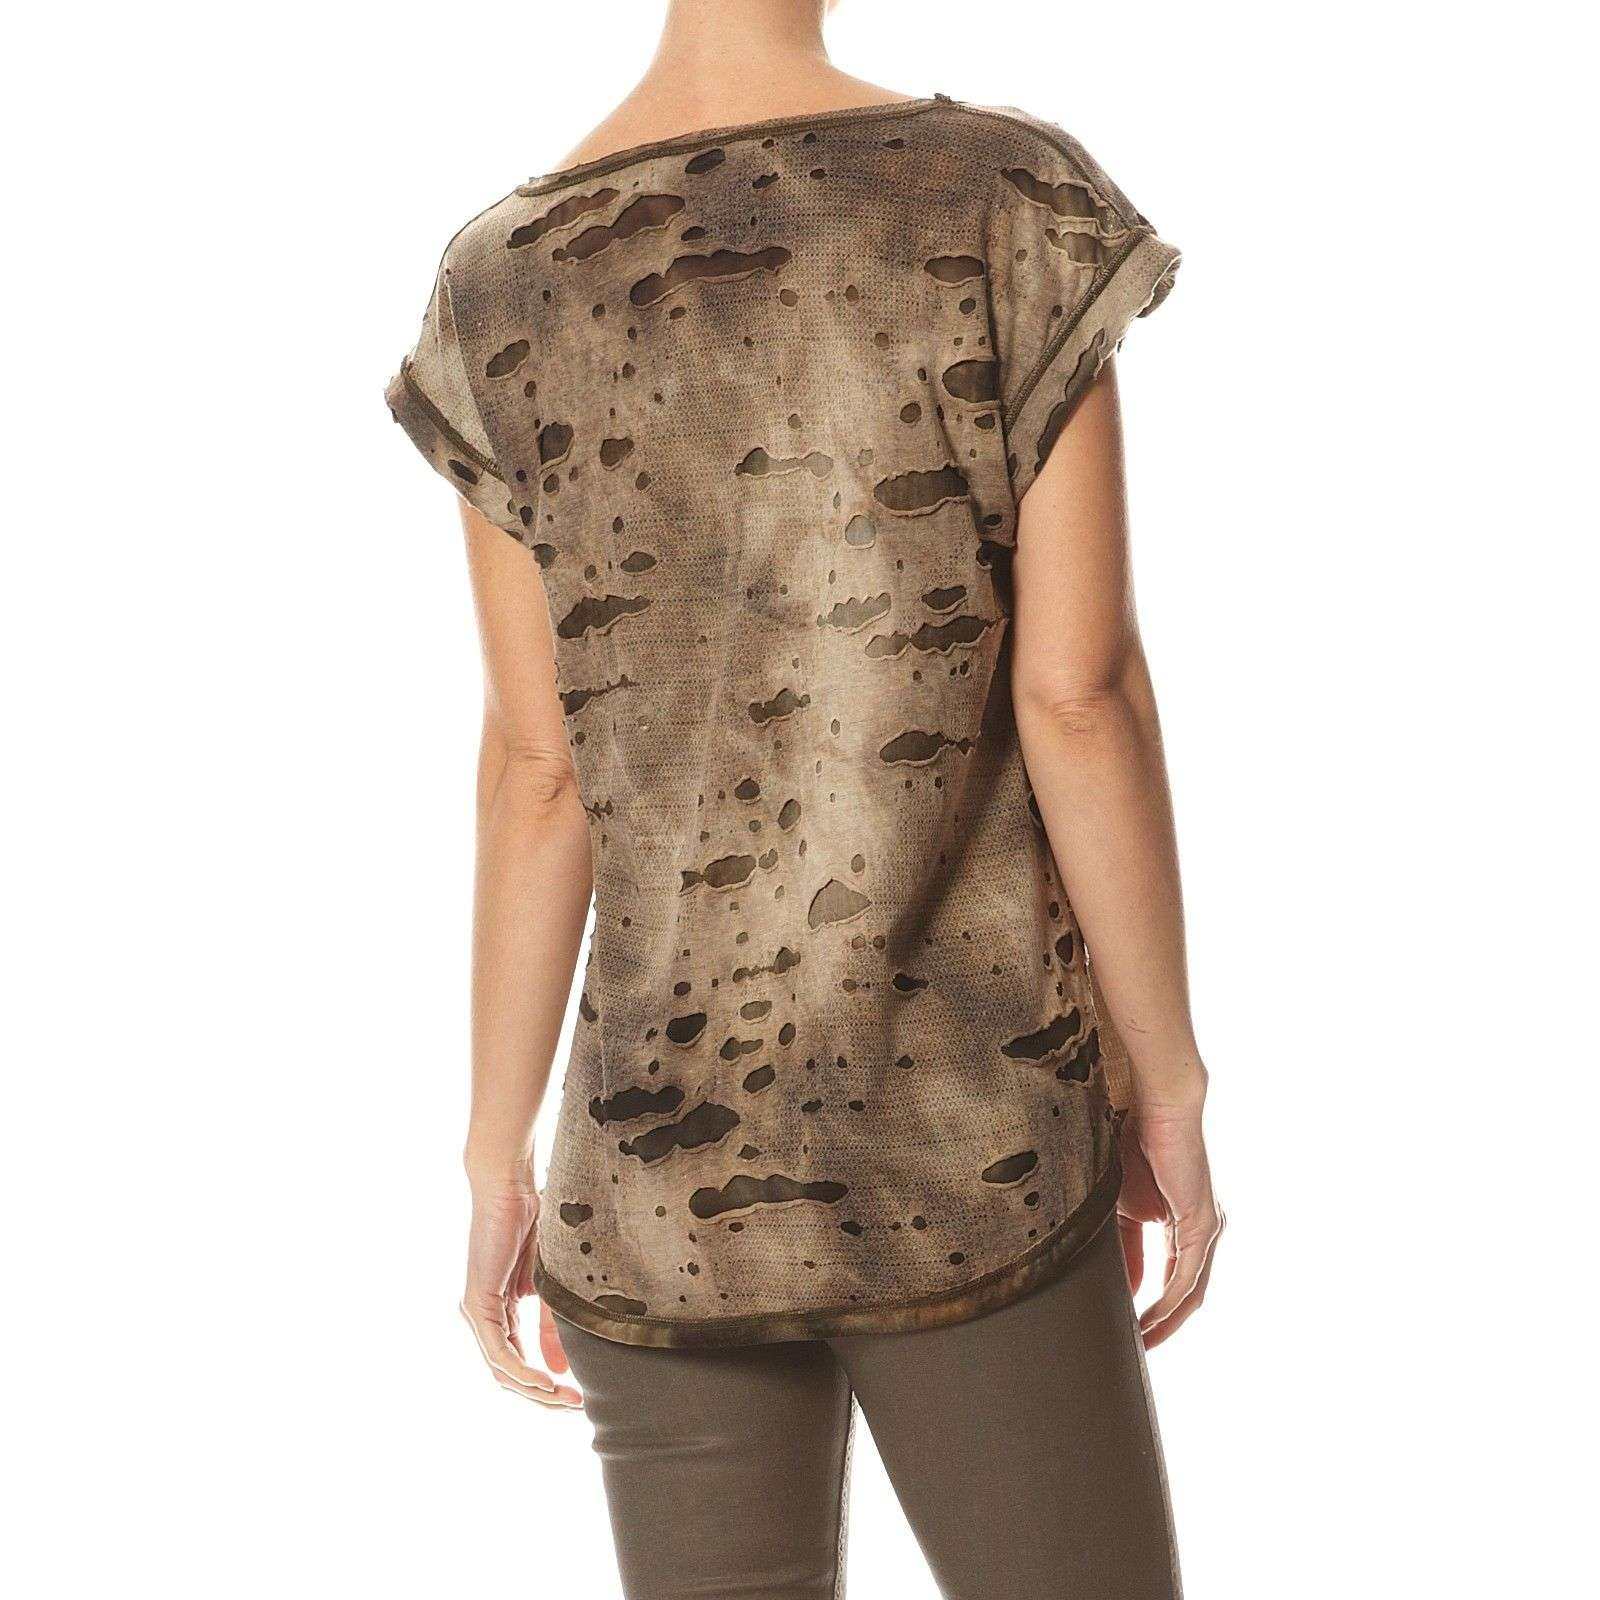 Vidal CourtesBronze V Femme T shirt Lauren Manches EYeDH29WI